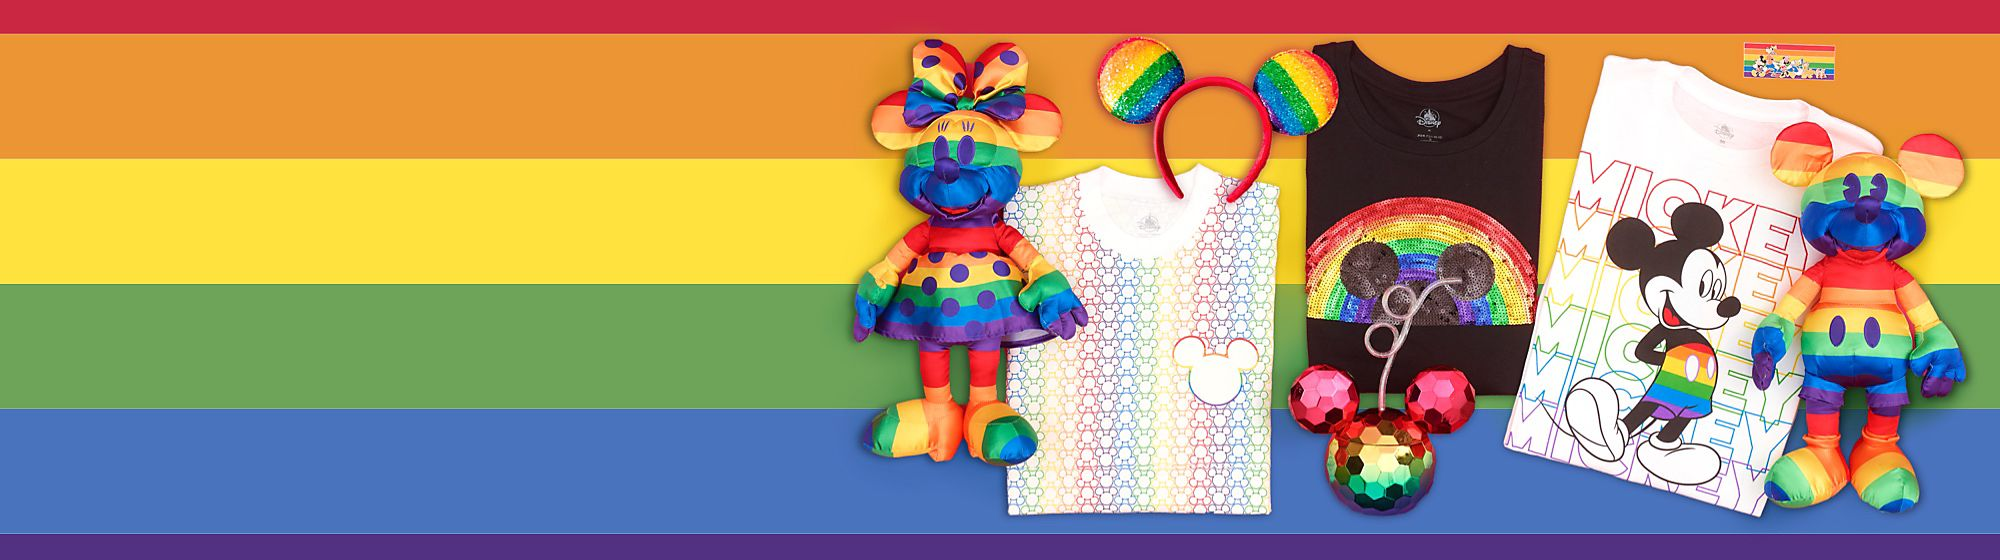 Disney Rainbow Collection In celebration of Pride Month 2020, shopDisney.co.uk has released the Rainbow Disney Collection, an exclusive range including soft toys, accessories and pin set. In recognition of Pride Month and the collection, Disney PRIDE UK will be donating to non-profit Diversity Role Models. ​